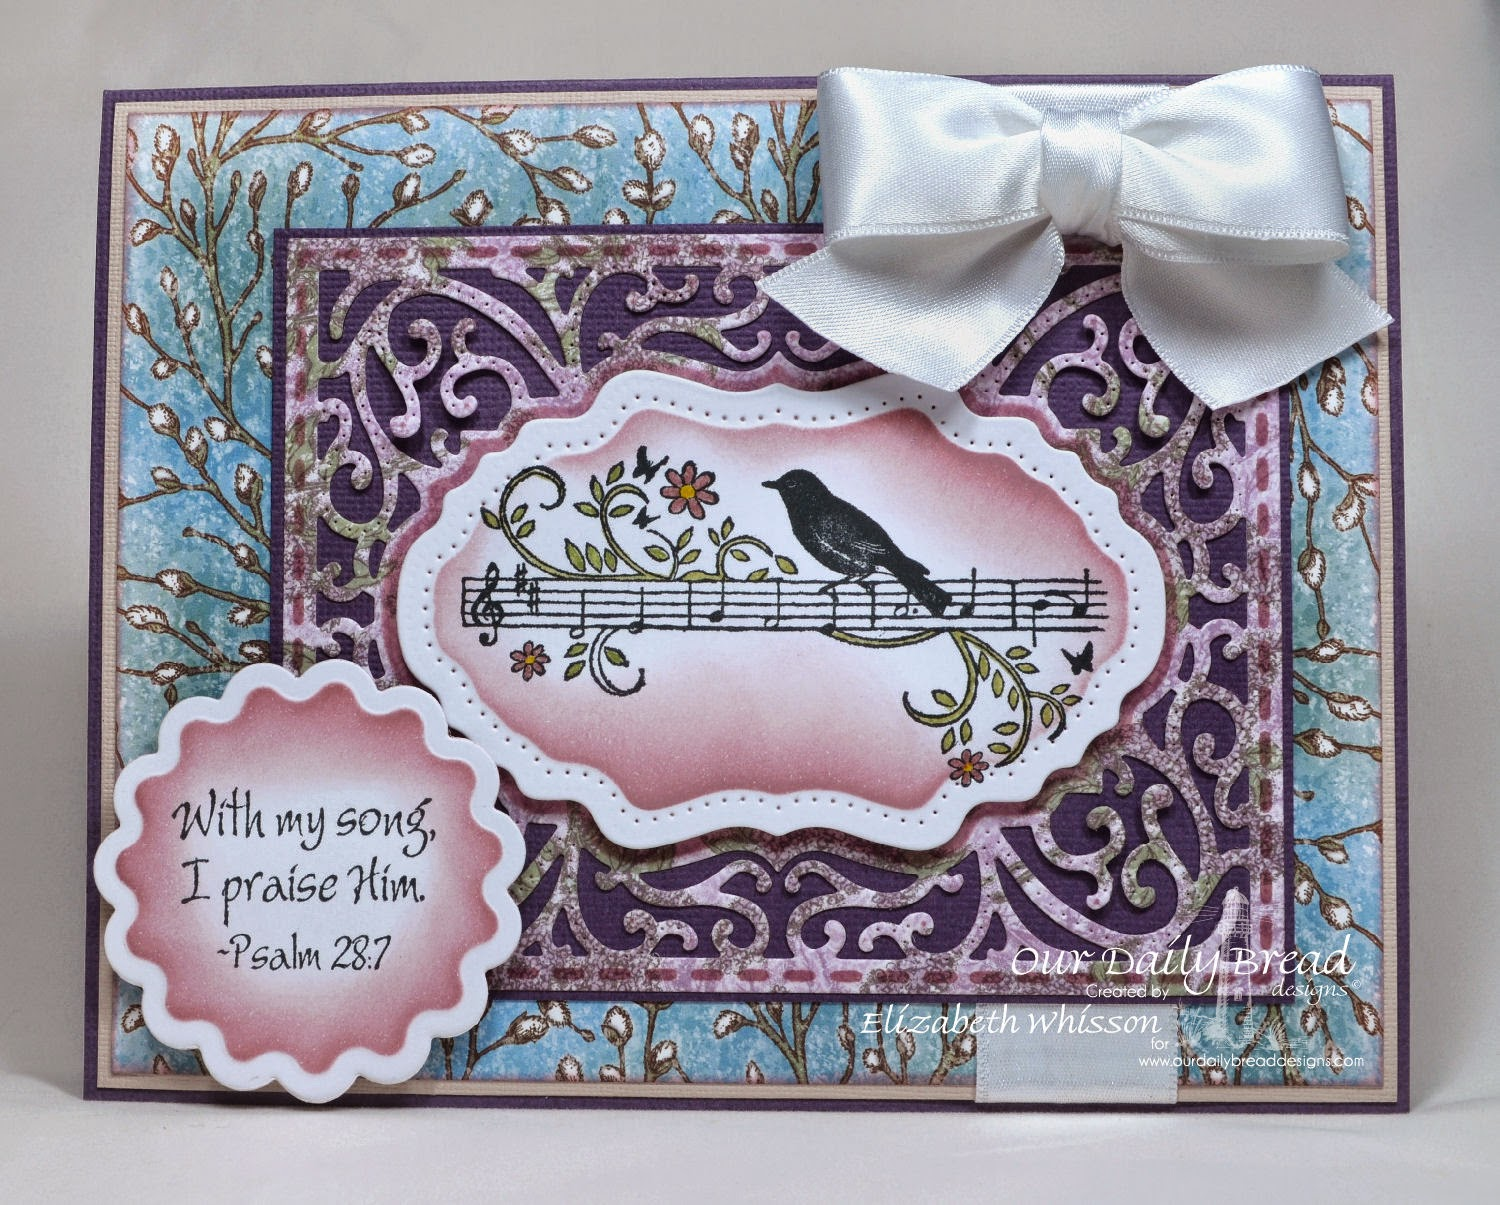 Our Daily Bread Designs, Music Speaks, ODBD Vintage Flourish Pattern Dies, ODBD Recipe Card and Tags Dies, ODBD Blooming Garden Paper Collection, Designed by Elizabeth Whisson, handmade card, Distress Markers, Distress Ink